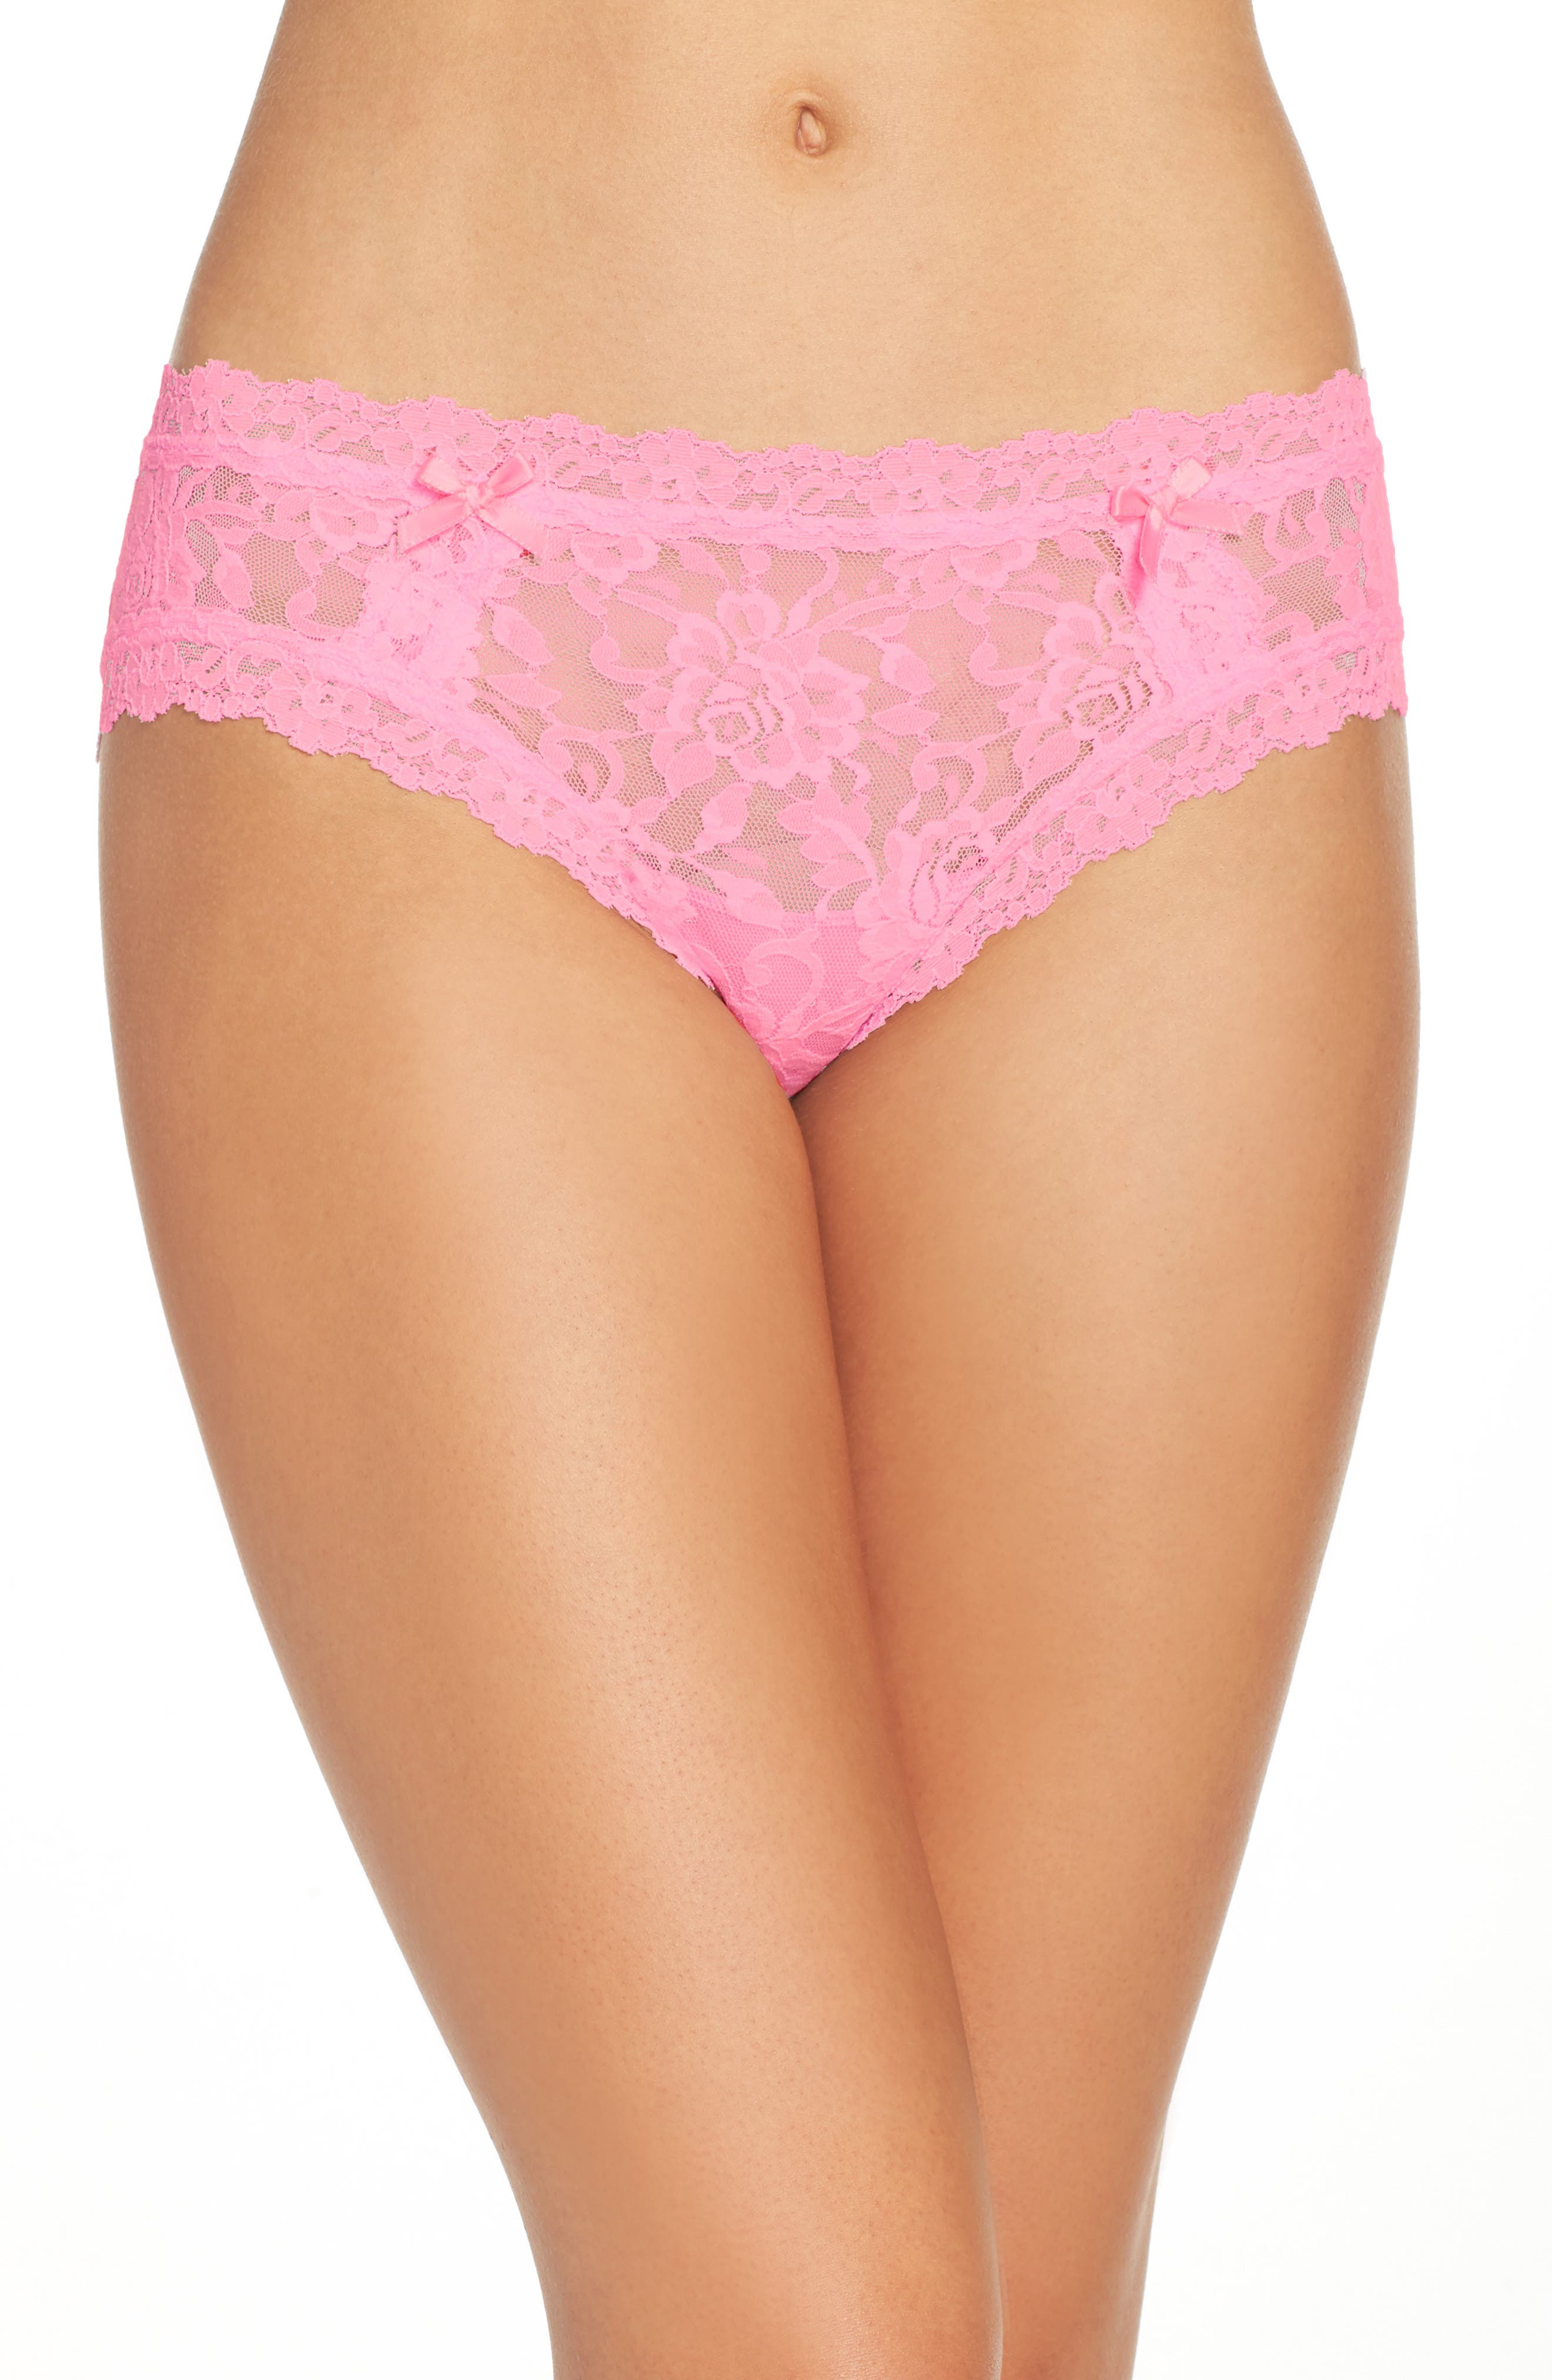 Main Image - Hanky Panky 'Signature Lace' Cheeky Hipster Briefs